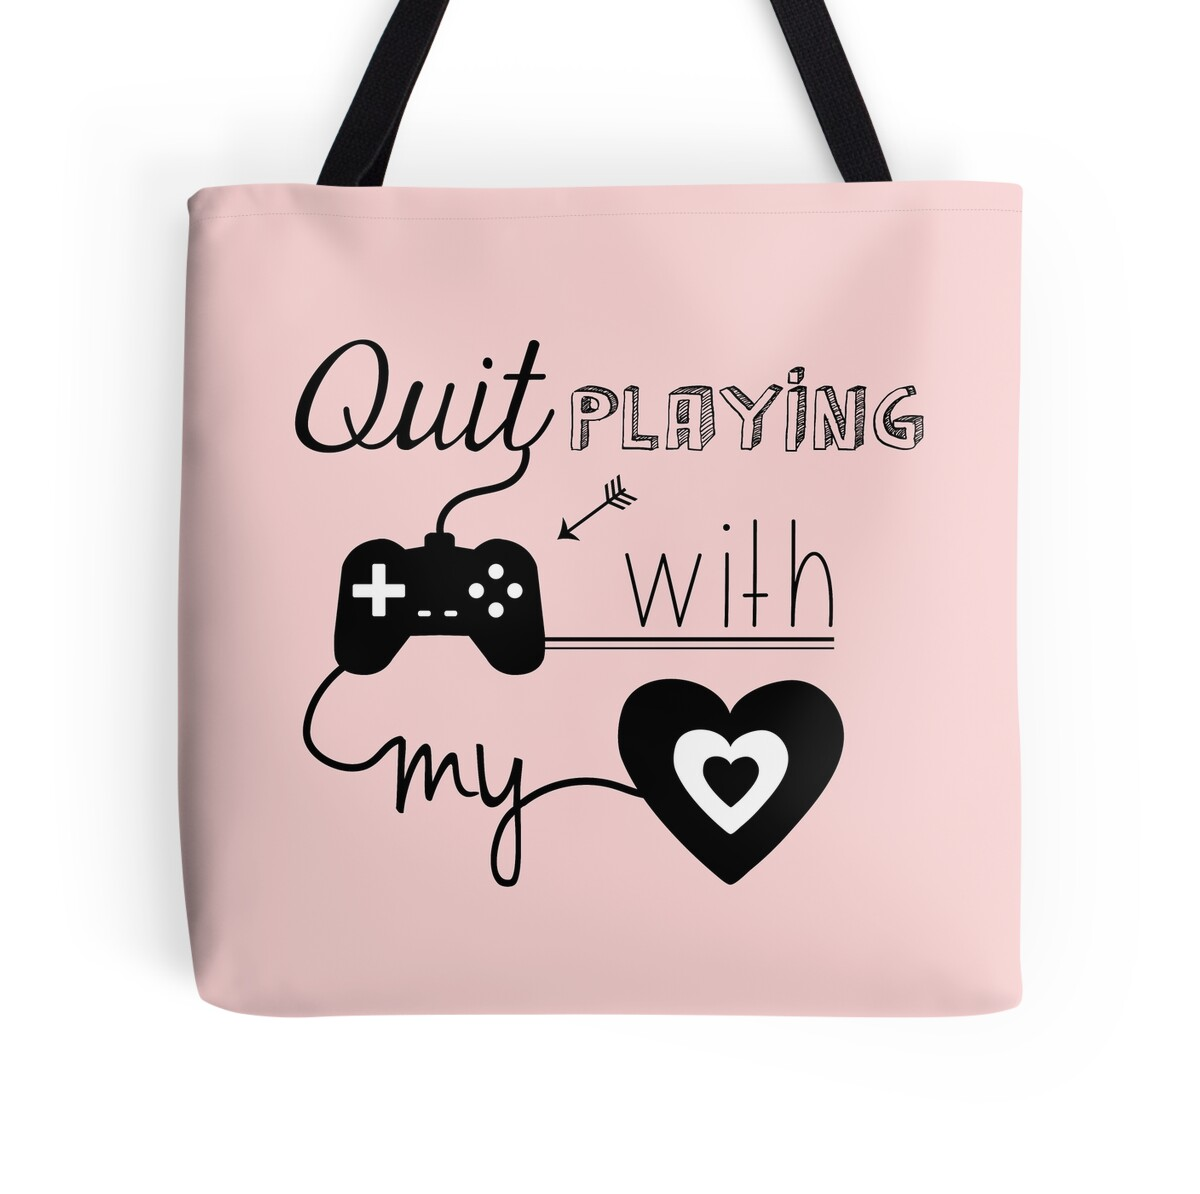 bsb quit playing games with my heart tote bags by. Black Bedroom Furniture Sets. Home Design Ideas